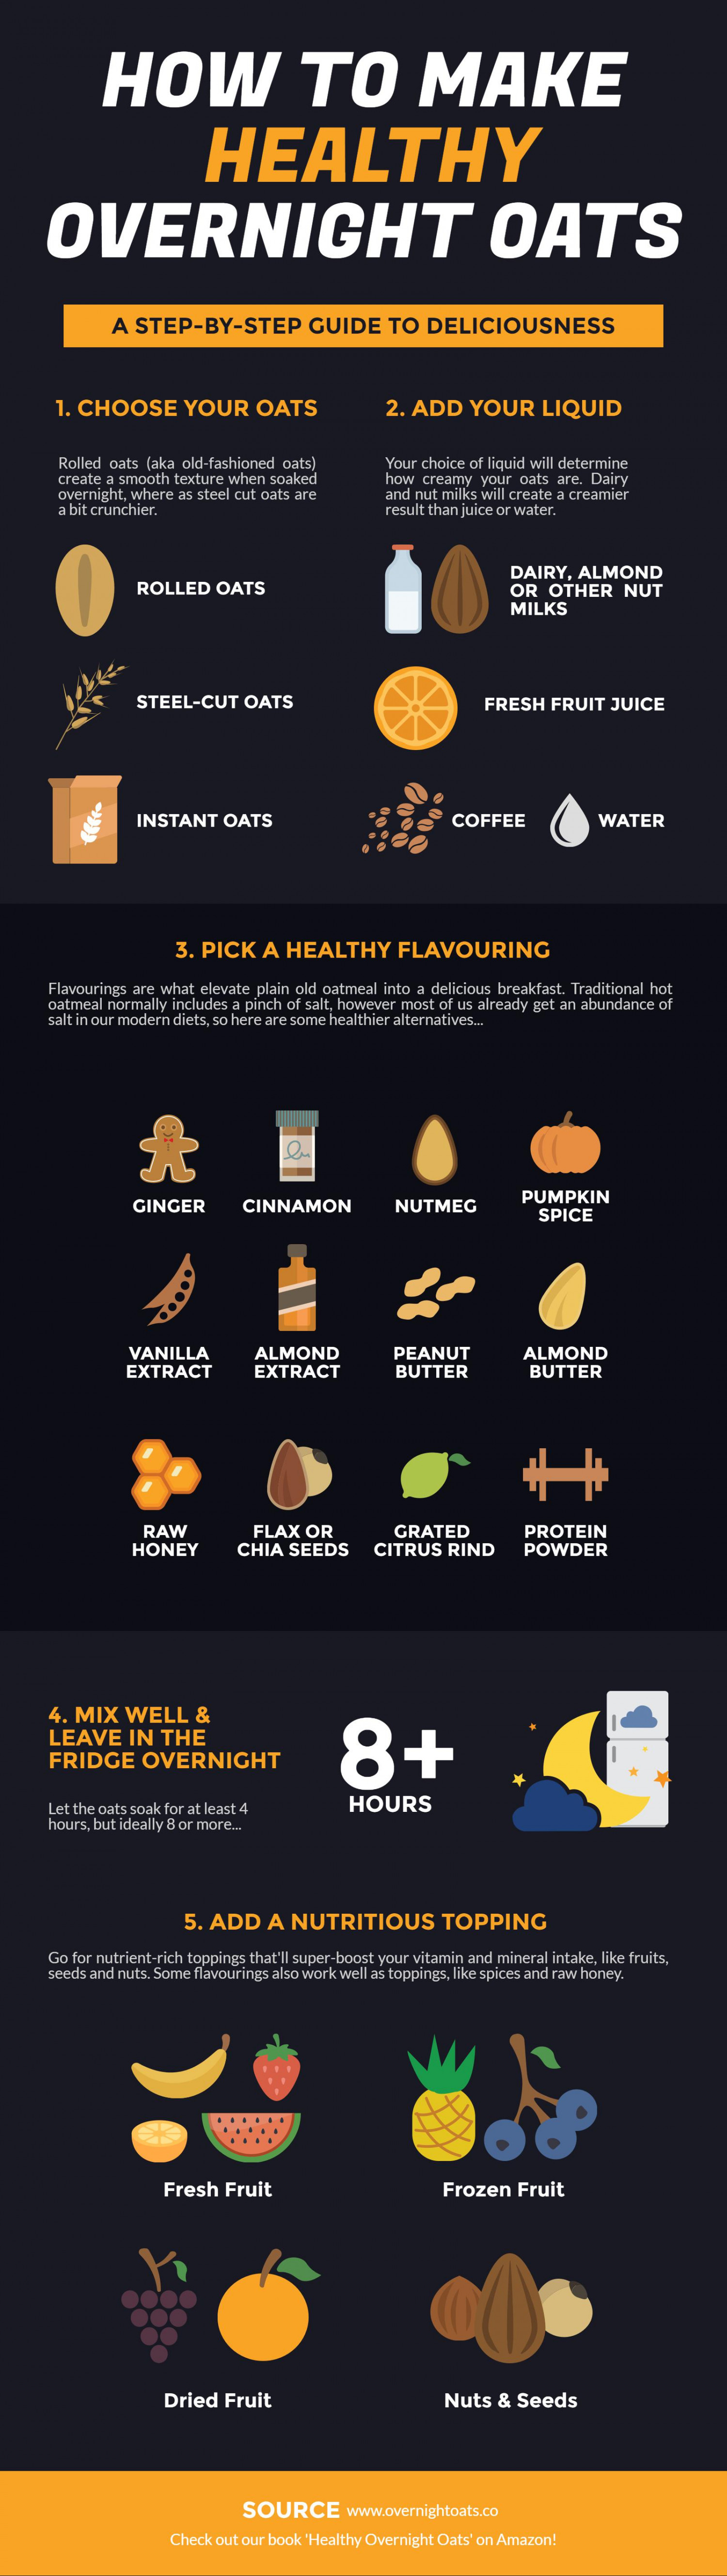 How to Make Healthy Overnight Oats Infographic